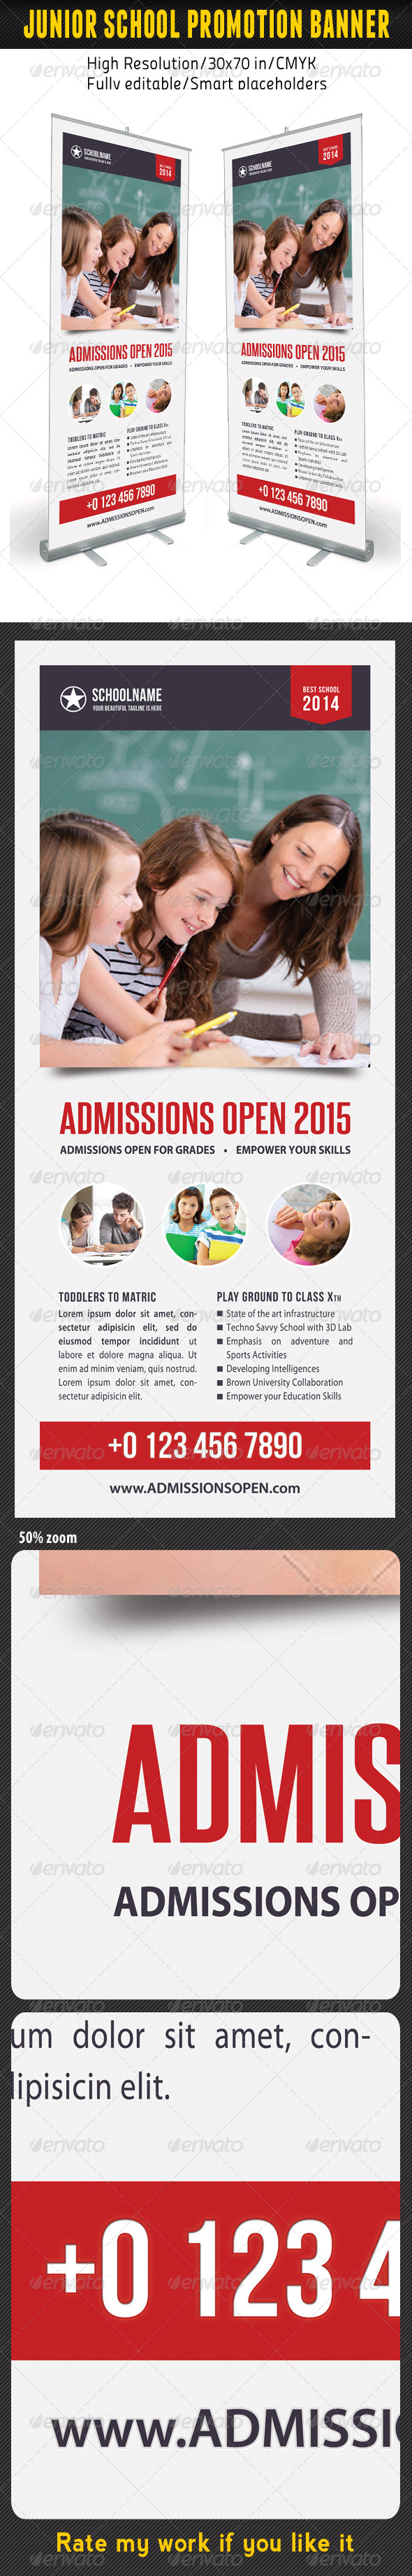 GraphicRiver Junior School Promotion Banner Template 08 7186065